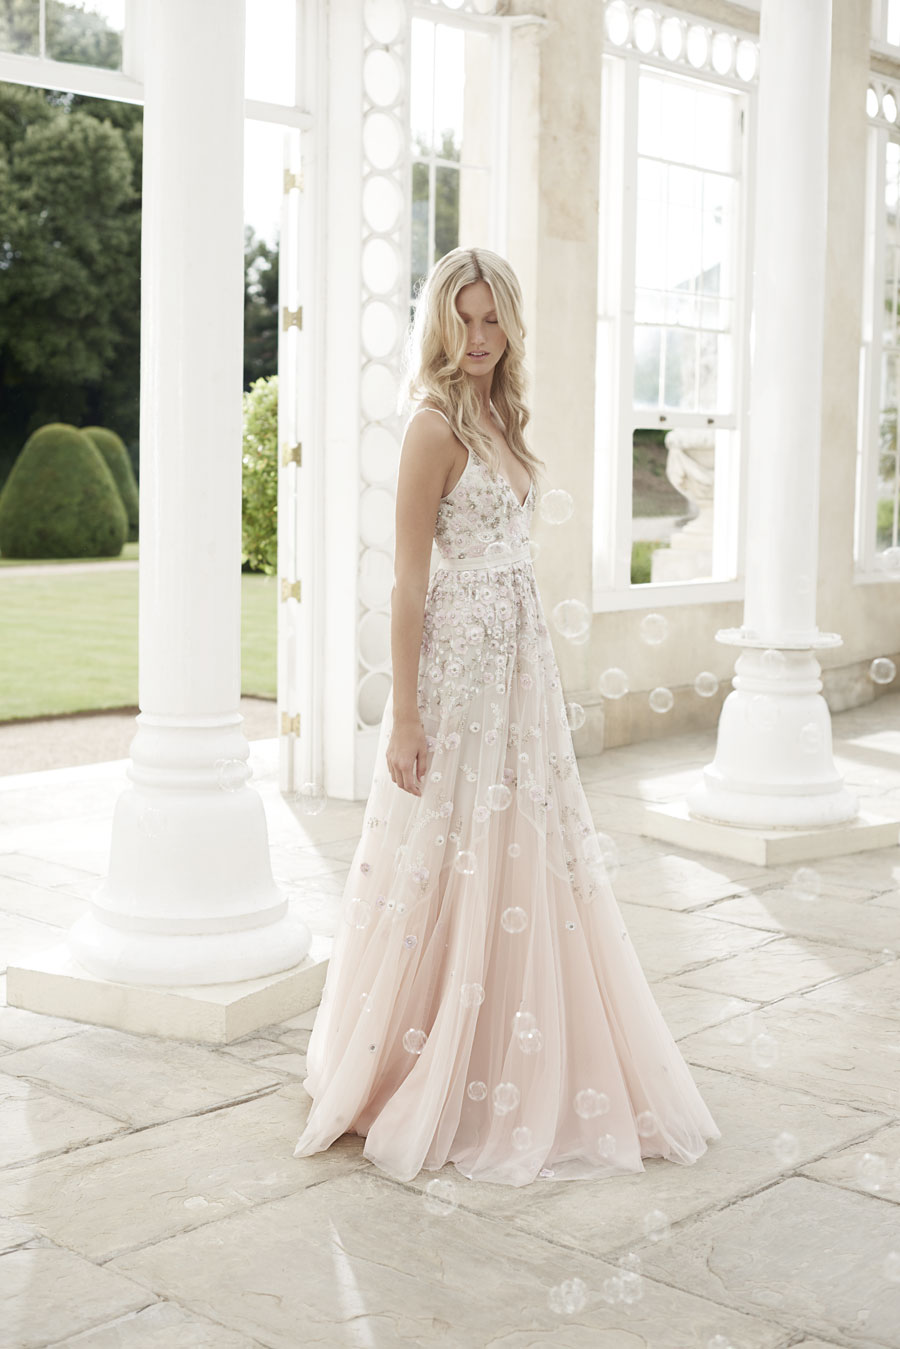 Wonderfully romantic wedding dresses the needle thread for Summer dresses for weddings